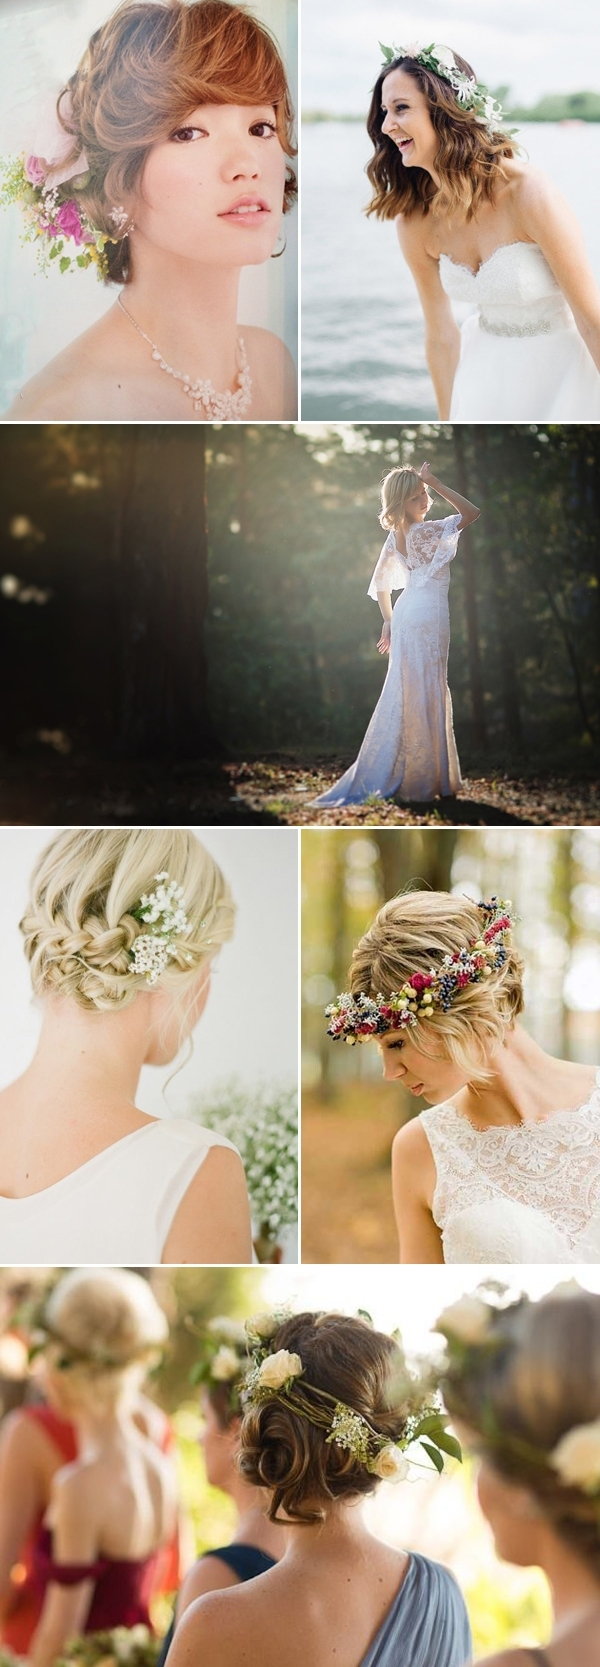 Deer Pearl Flowers In Latest Country Wedding Hairstyles For Short Hair (View 9 of 15)